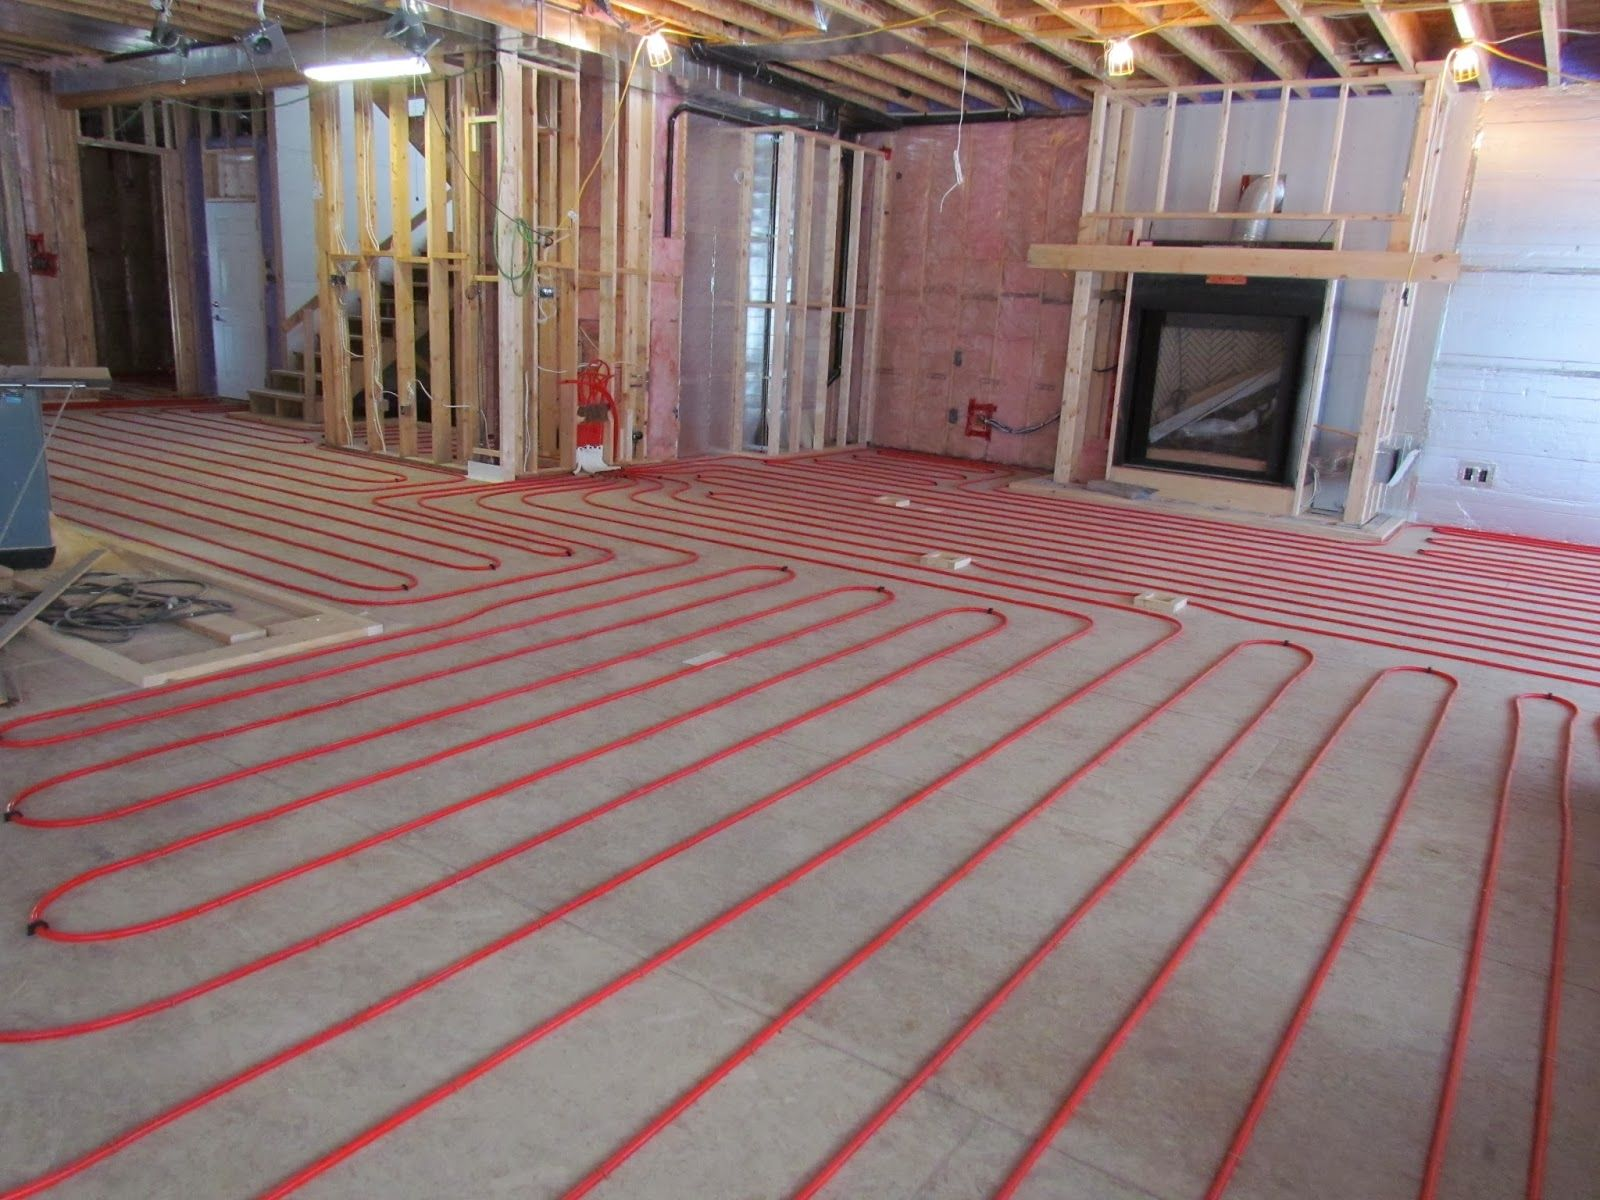 Basement Floor Heating Under Carpet Floor Heating Systems Radiant Floor Basement Flooring Options